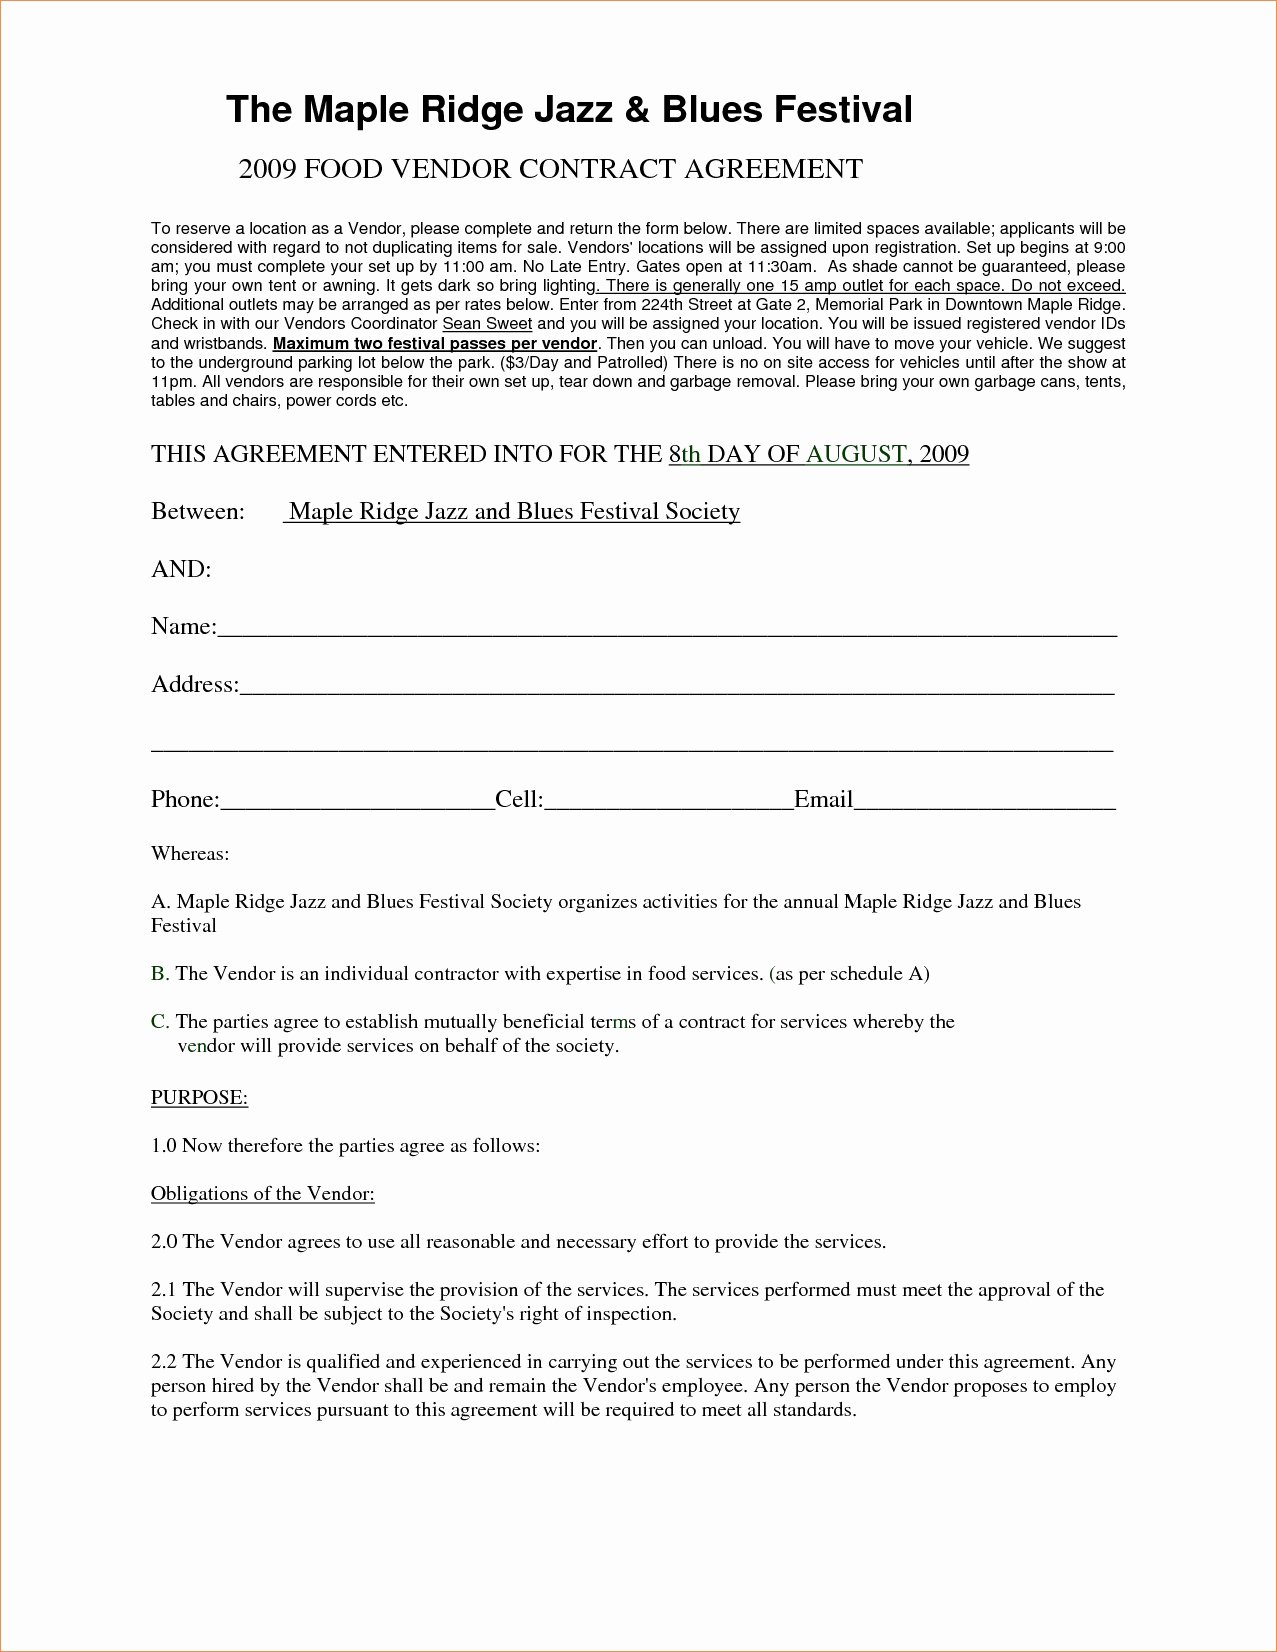 Wedding Vendor Contract Template Fresh Investment Agreement Template Doc Quick Simple Investment